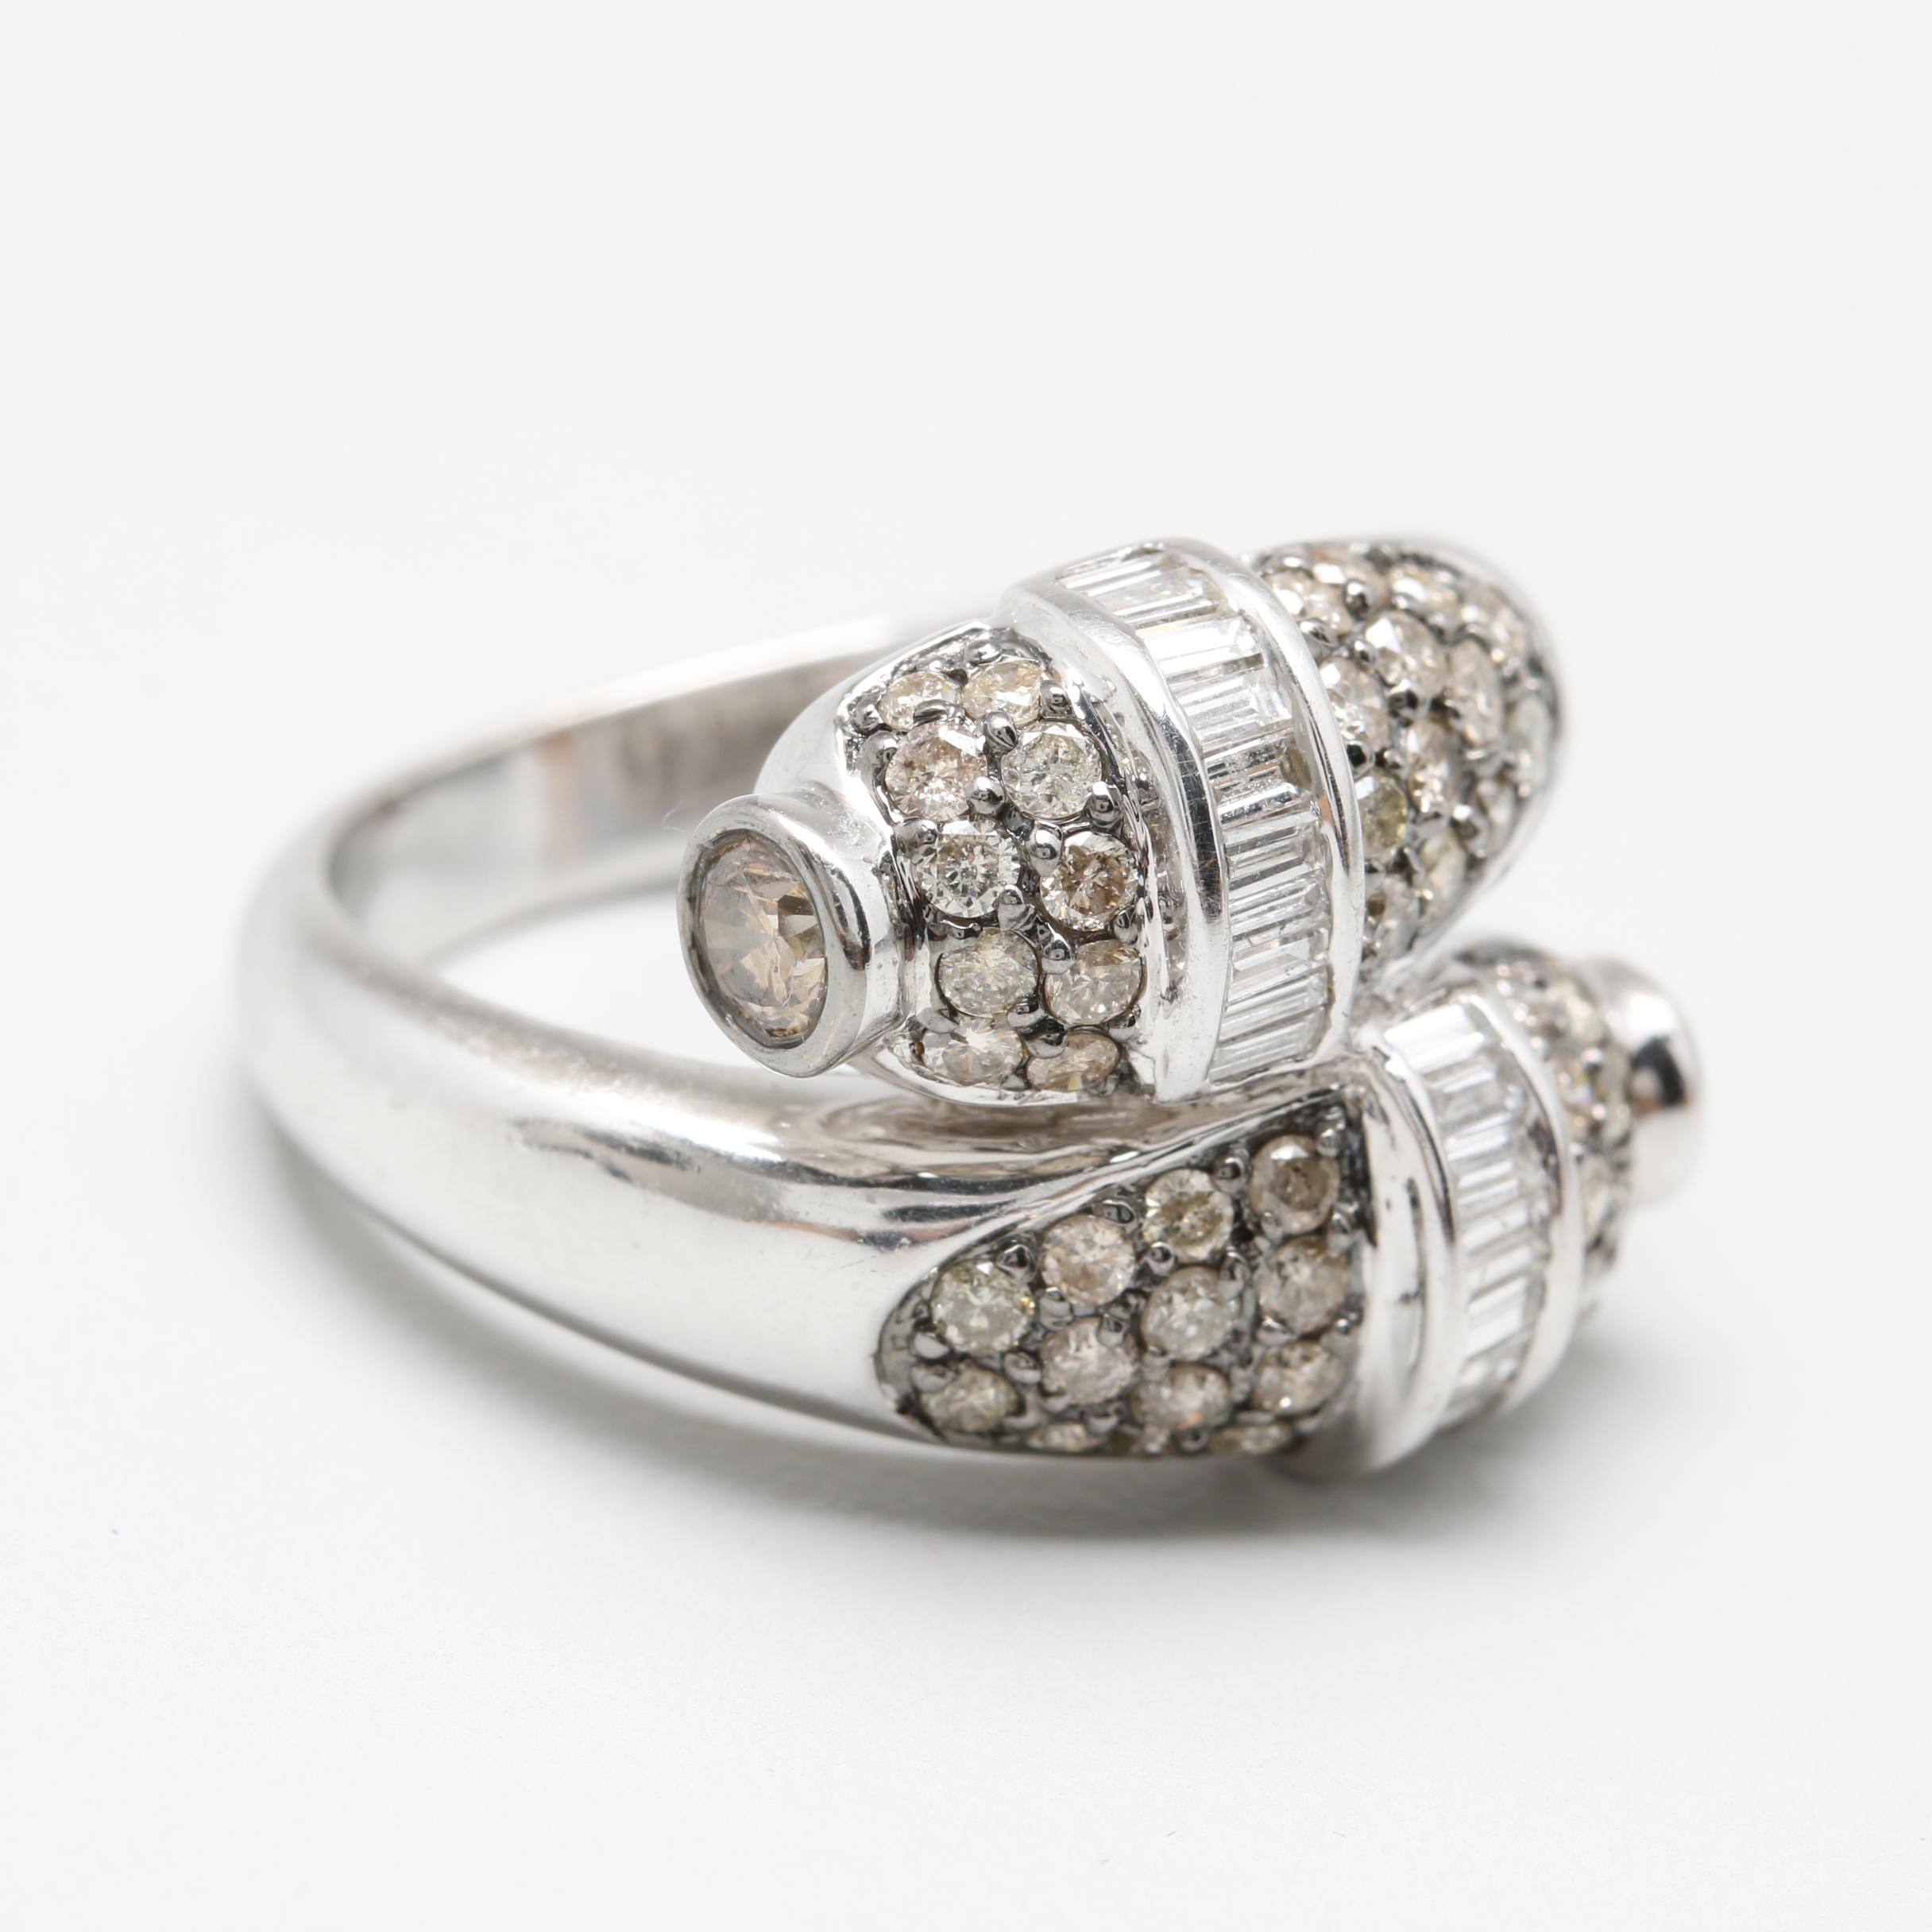 14K White Gold 1.43 CTW Diamond Bypass Ring